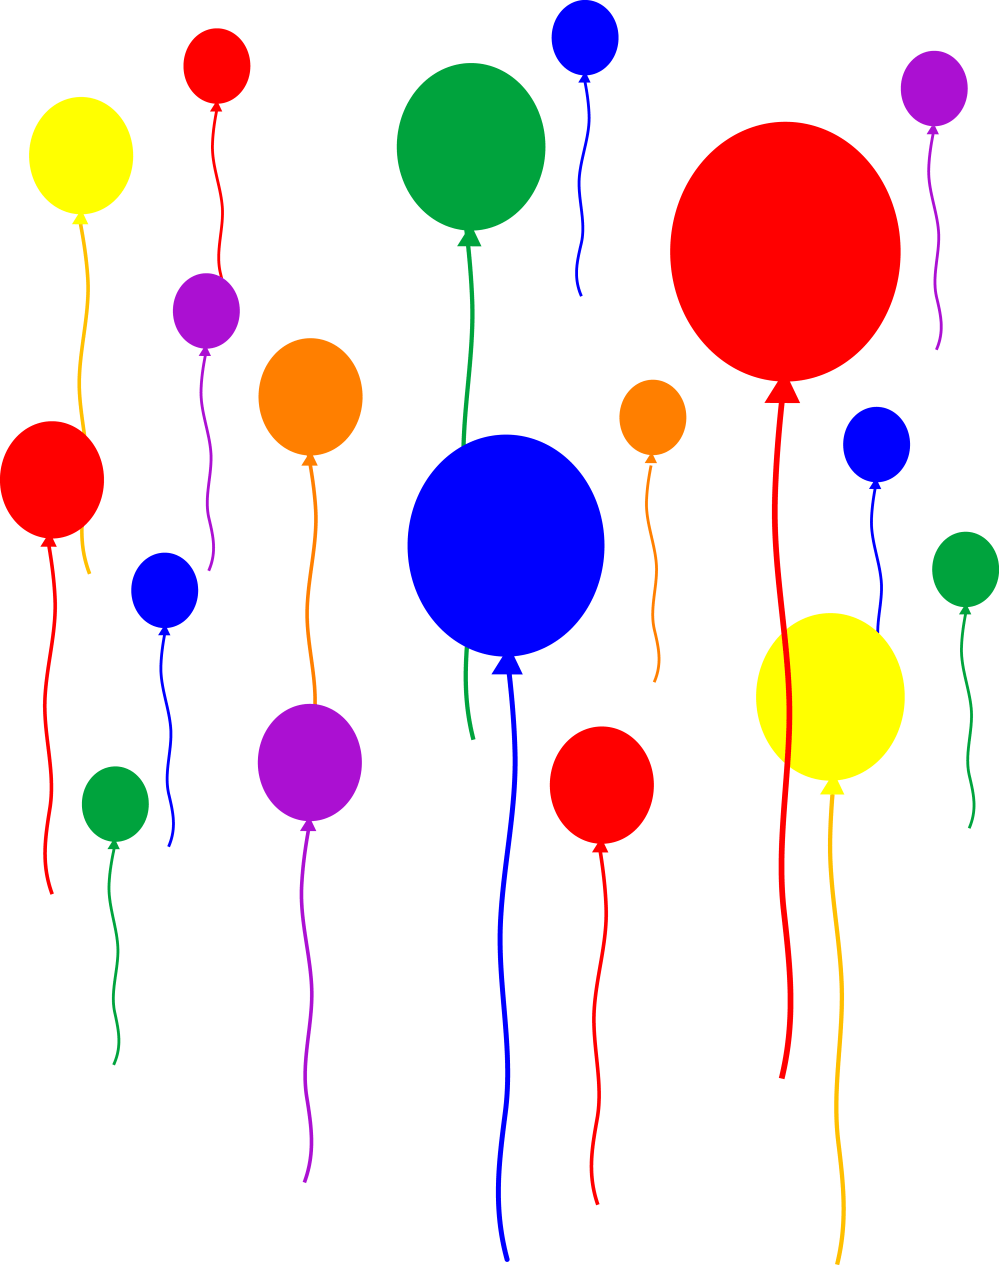 medium resolution of party balloons on transparent background free clip art